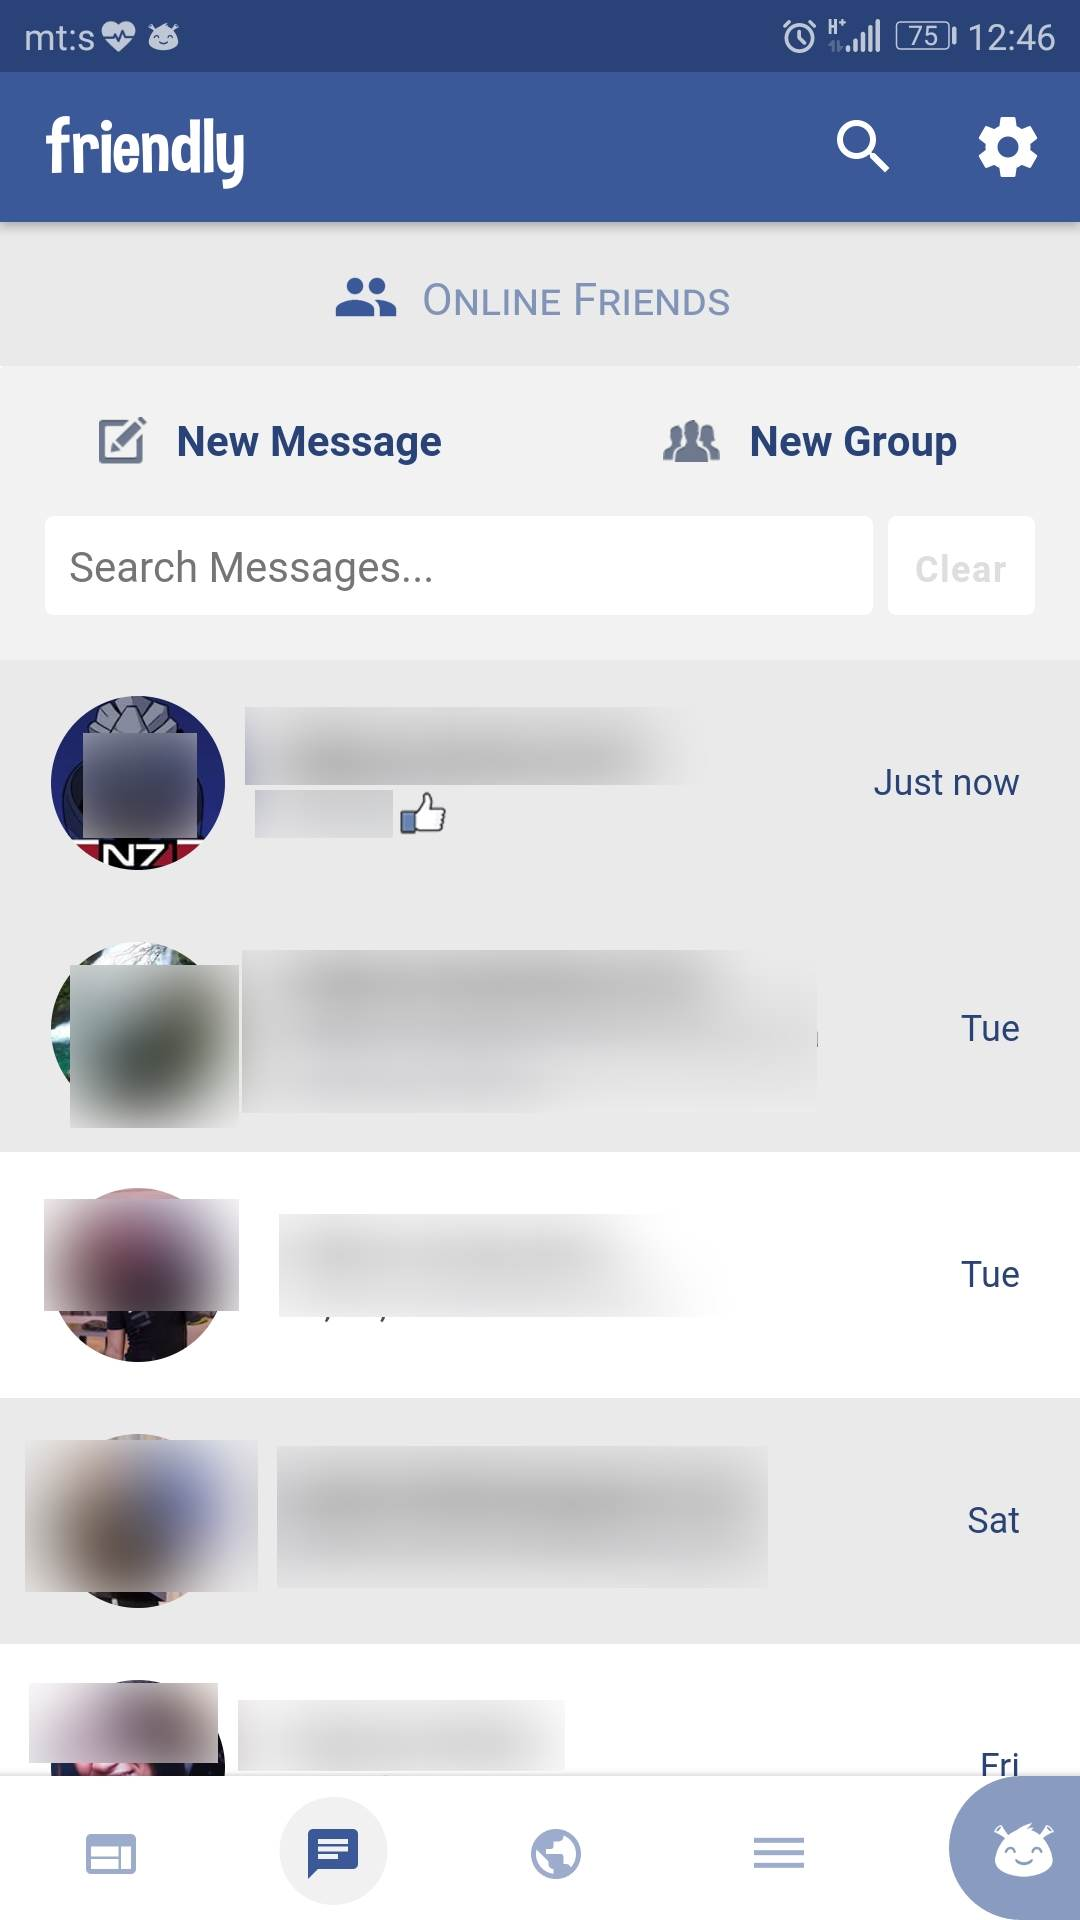 Izbrišite Facebook i Messenger, koristite FRIENDLY